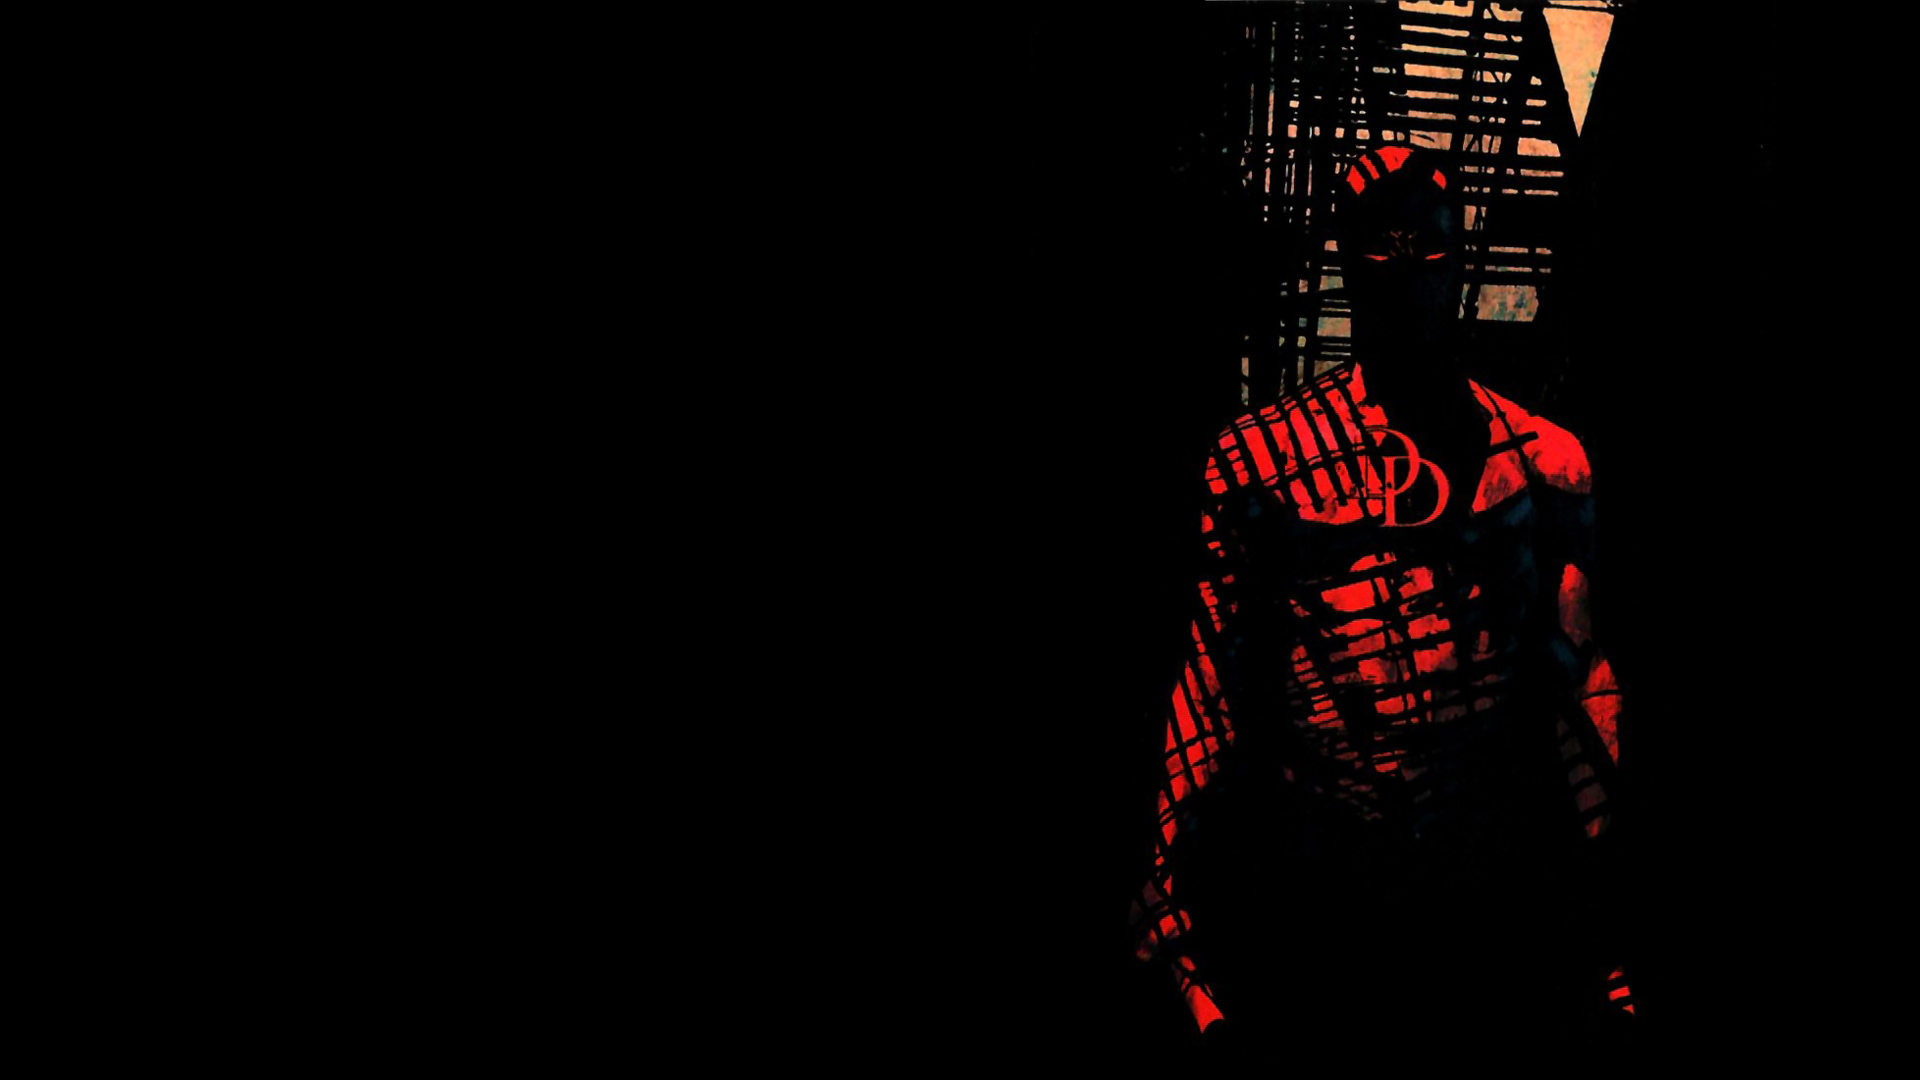 Daredevil HD Wallpaper | Background Image | 1920x1080 | ID:548501 - Wallpaper Abyss